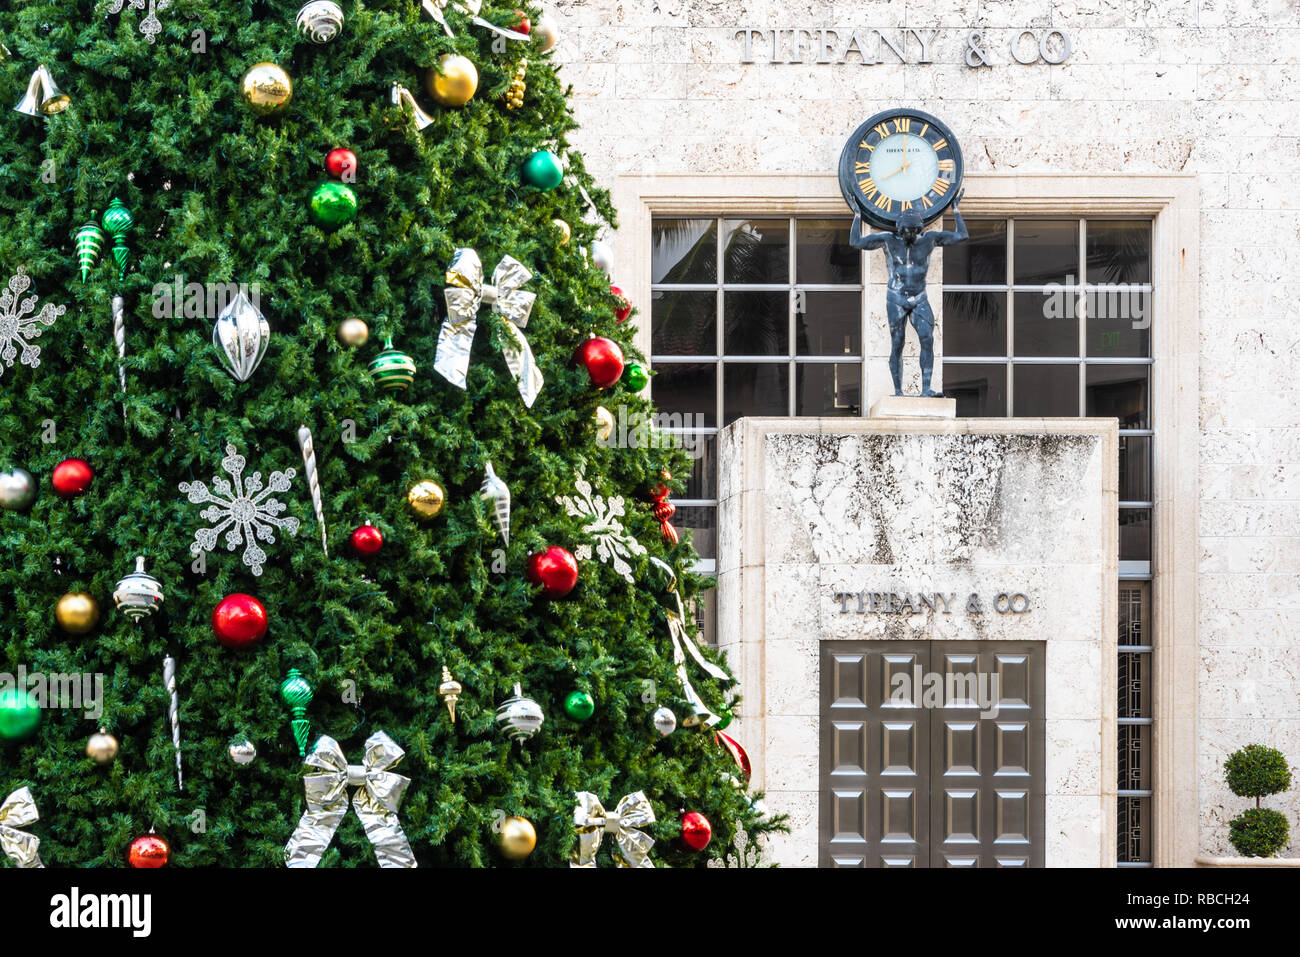 Worth Avenue Christmas tree at Tiffany and Co. in Palm Beach, Florida. (USA) Stock Photo